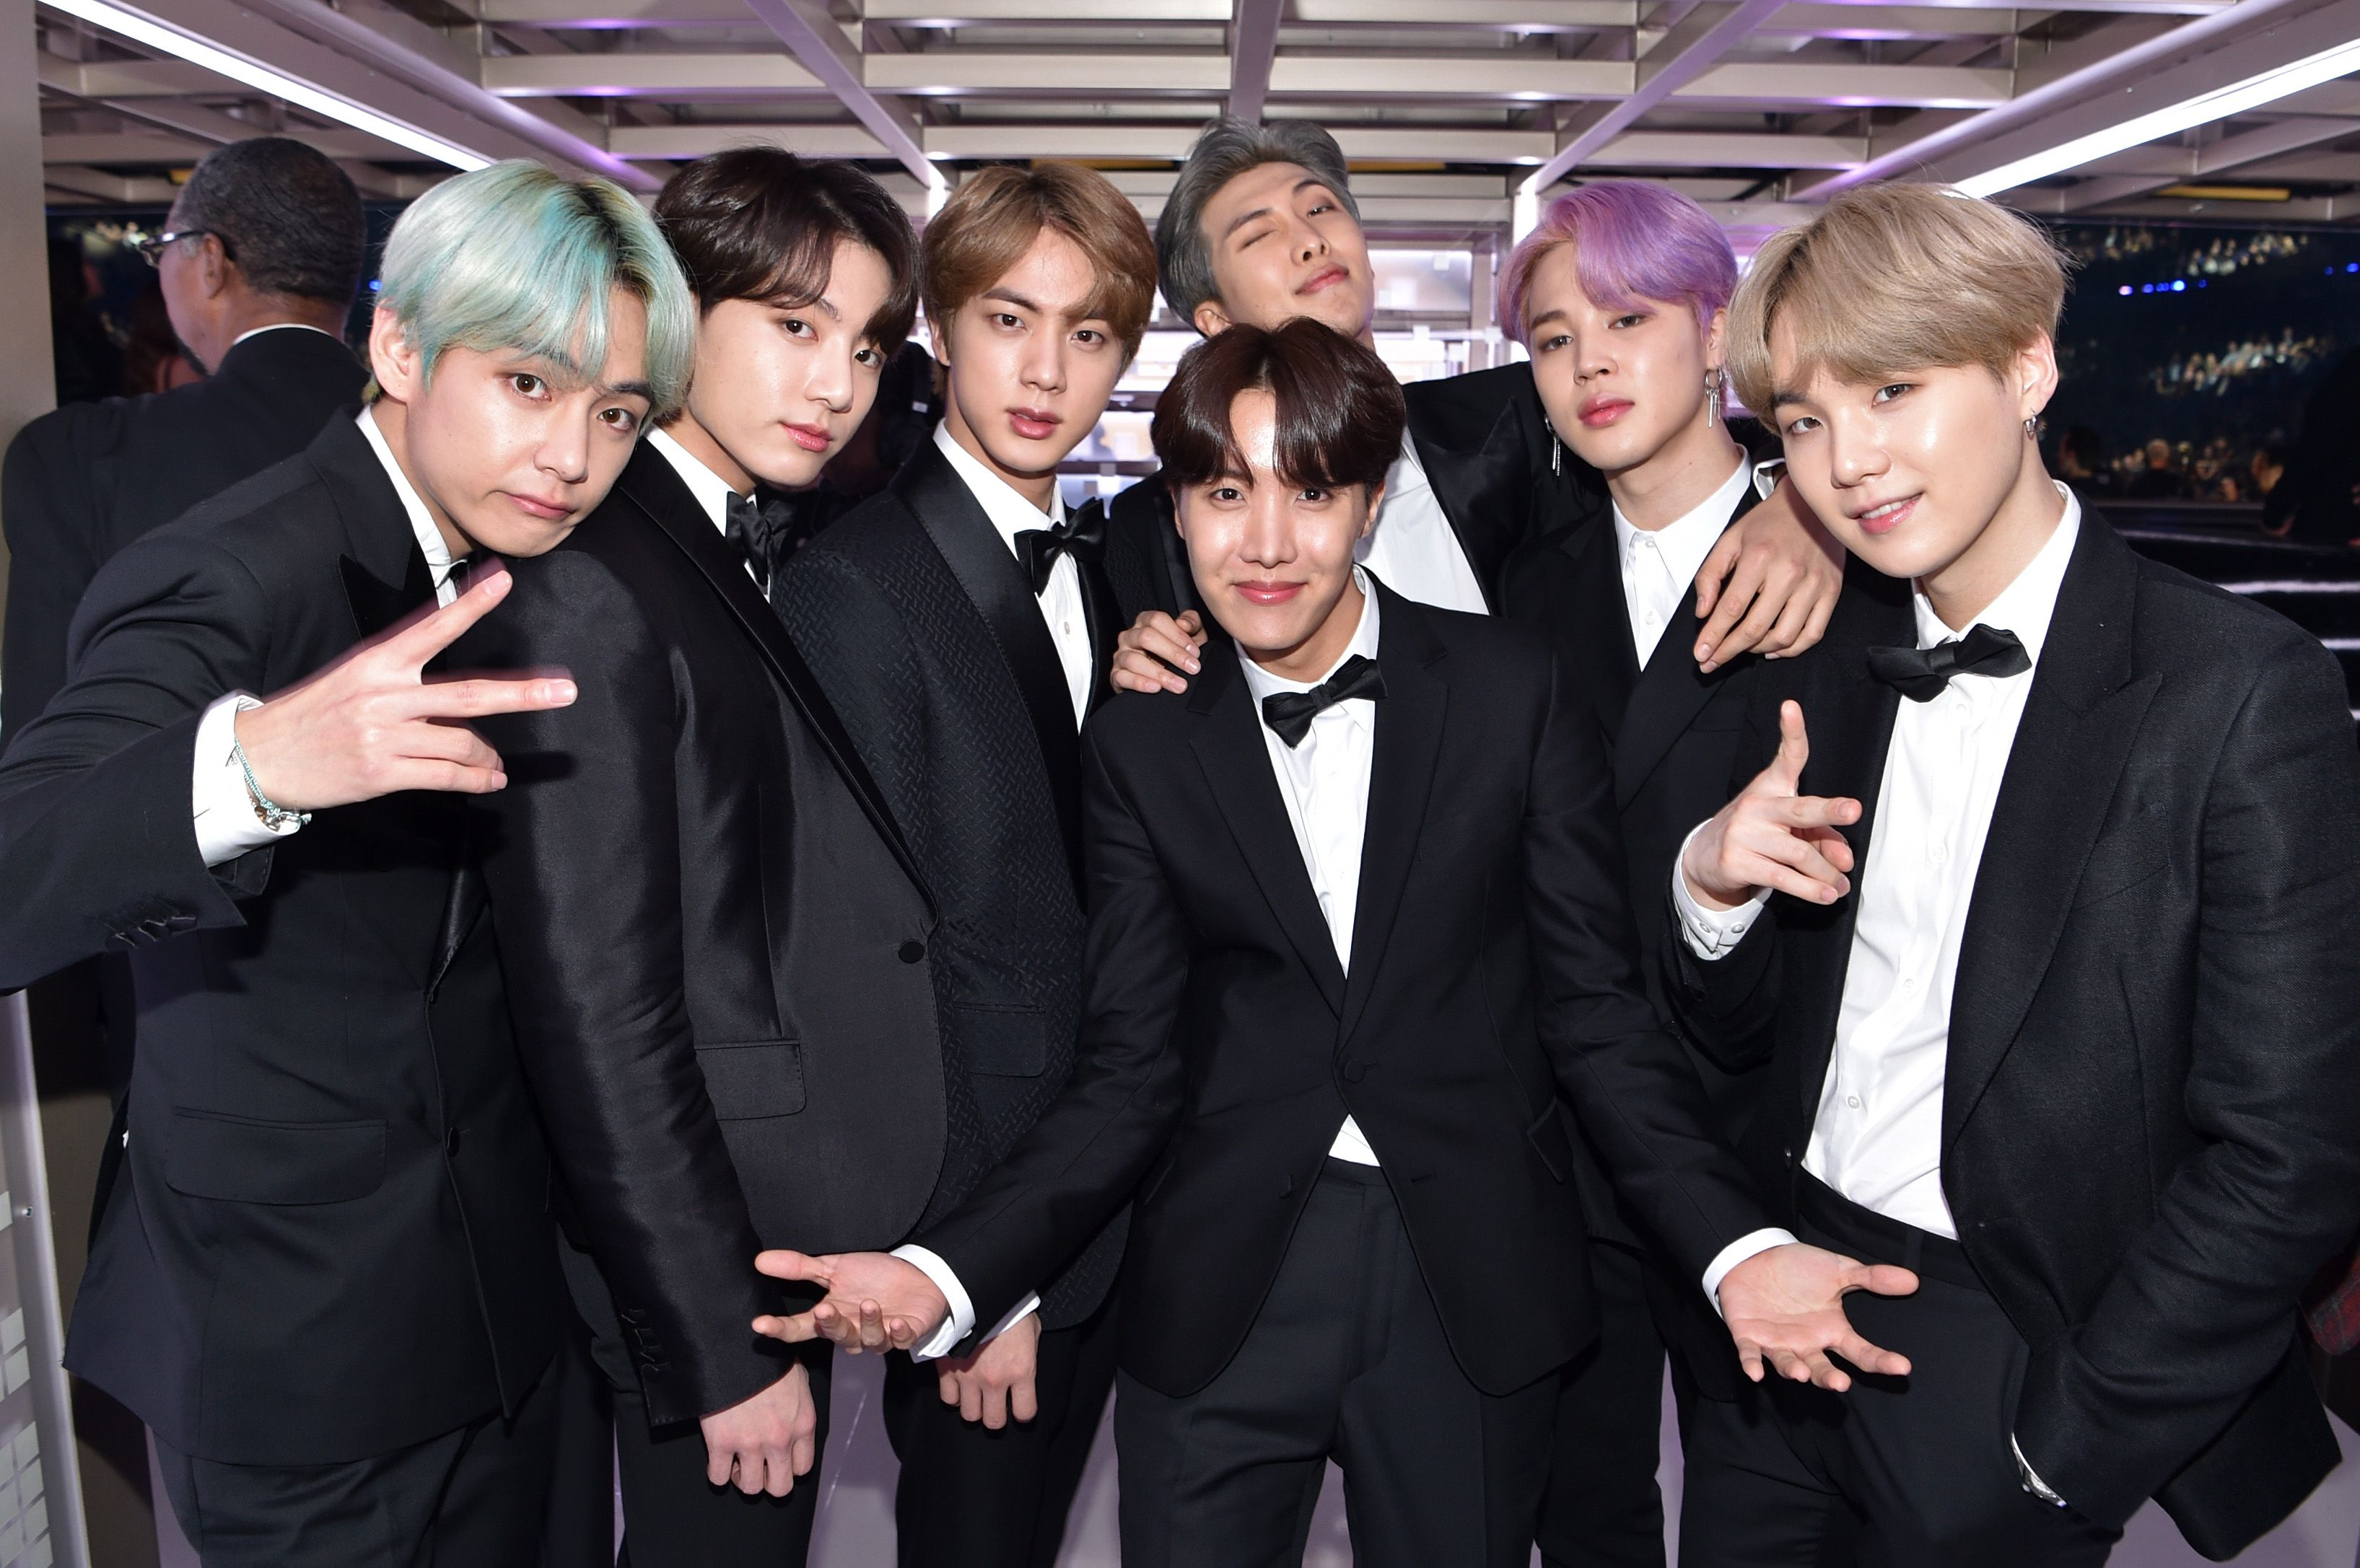 Bring the Soul: The Movie by BTS breaks records at Real-time reservation rankings